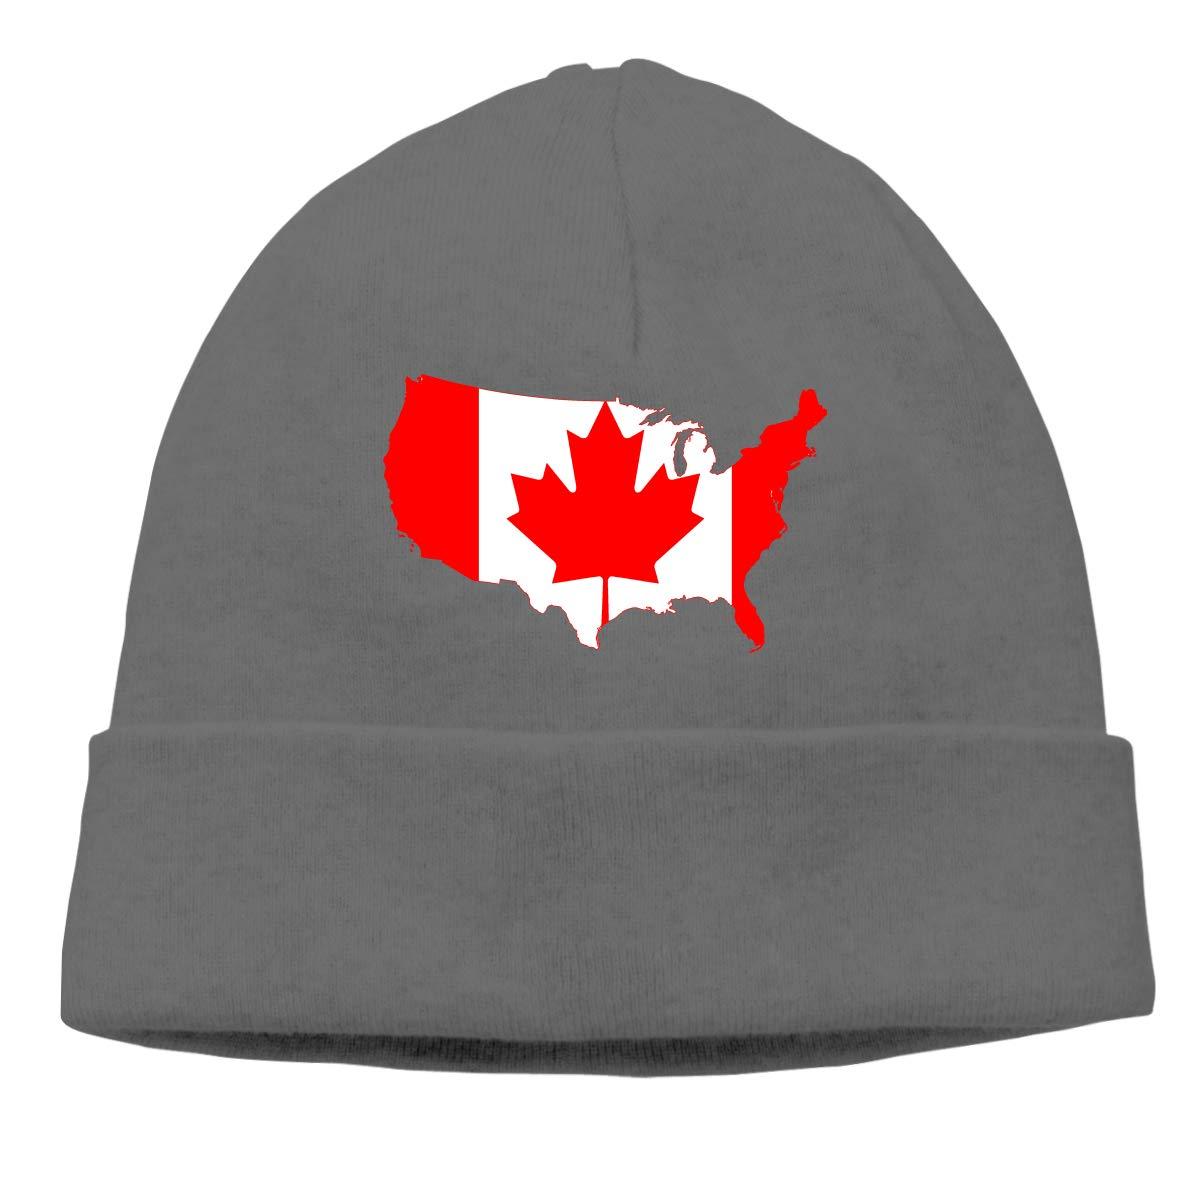 7227d6dc0 Amazon.com: Us and Canada Map Beanie Hat Cute Toboggan Hat Winter ...